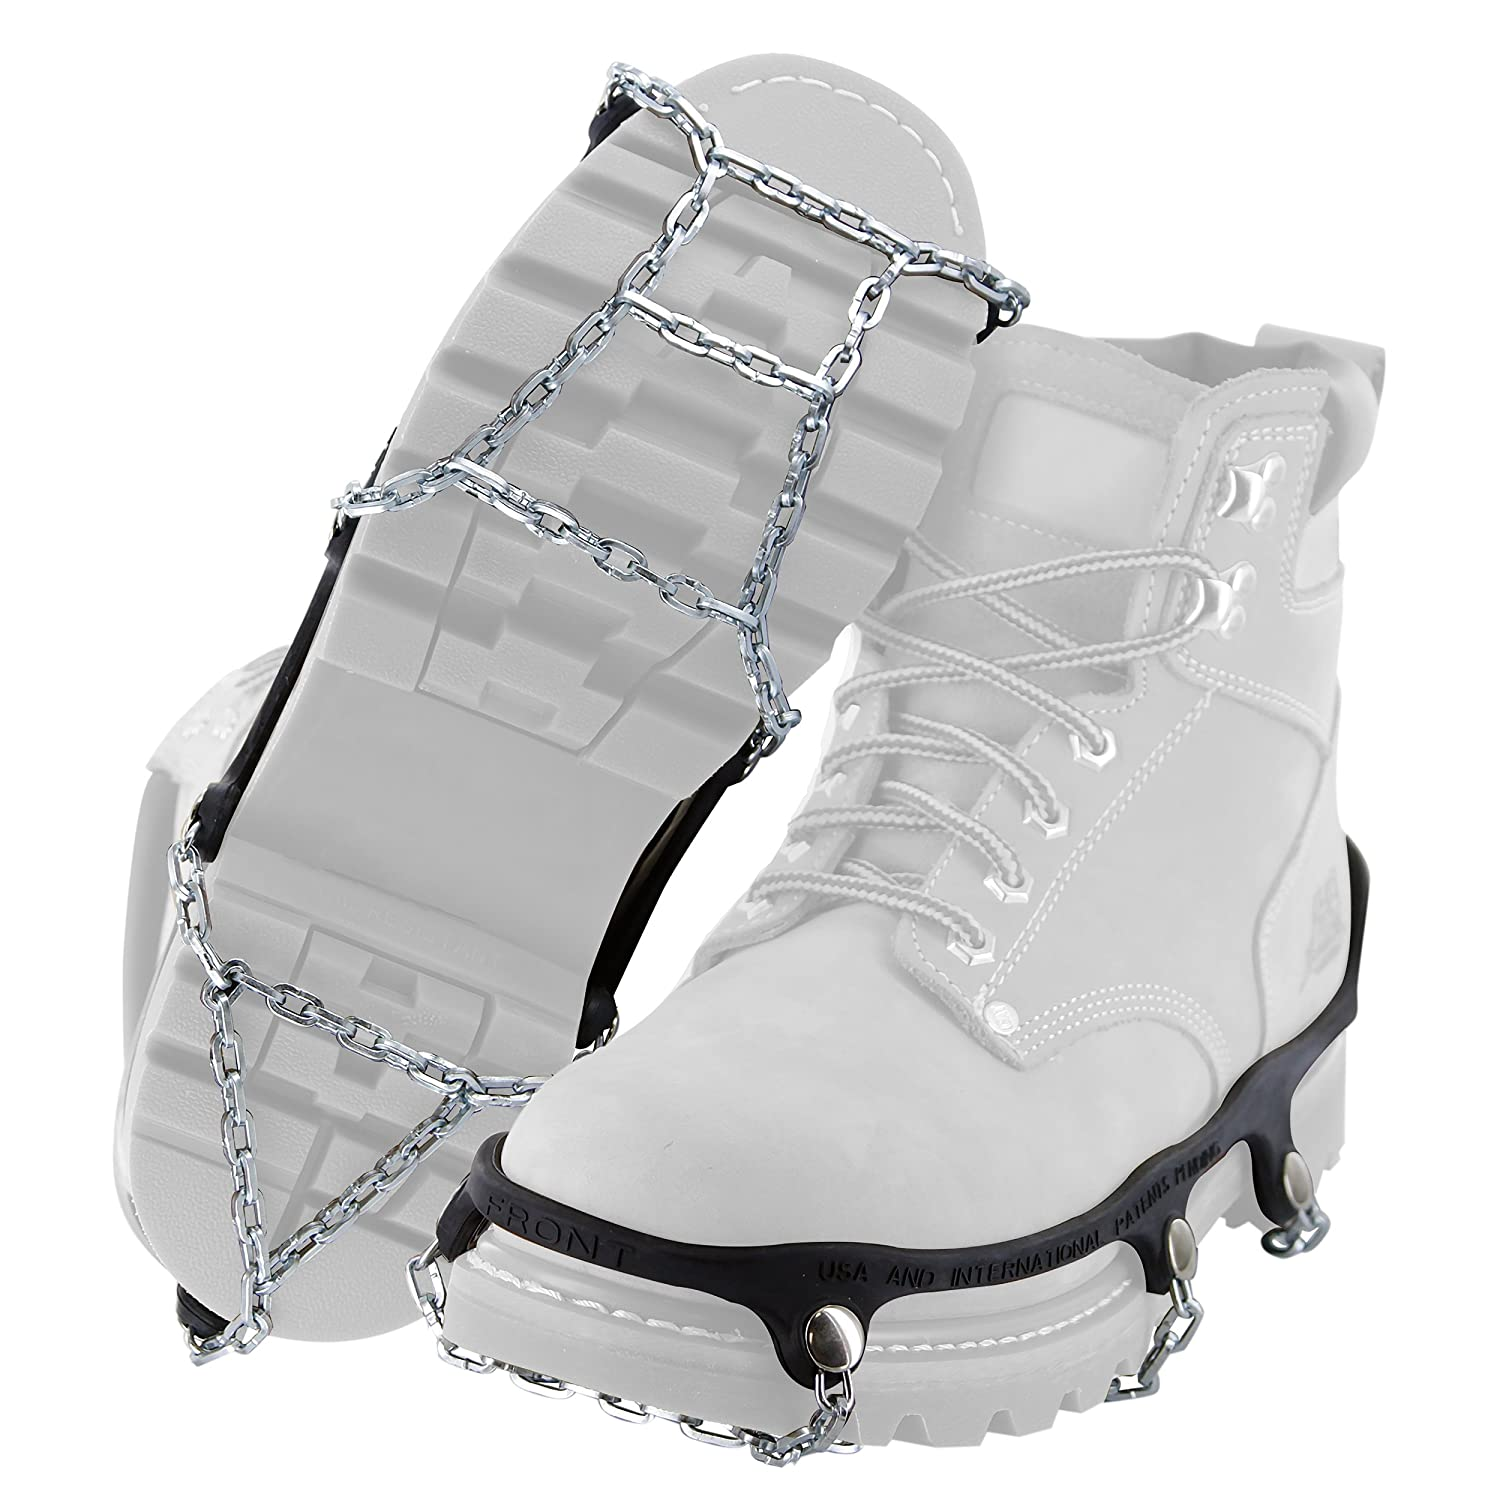 Yaktrax Traction Chains for Walking on Ice and Snow Pair